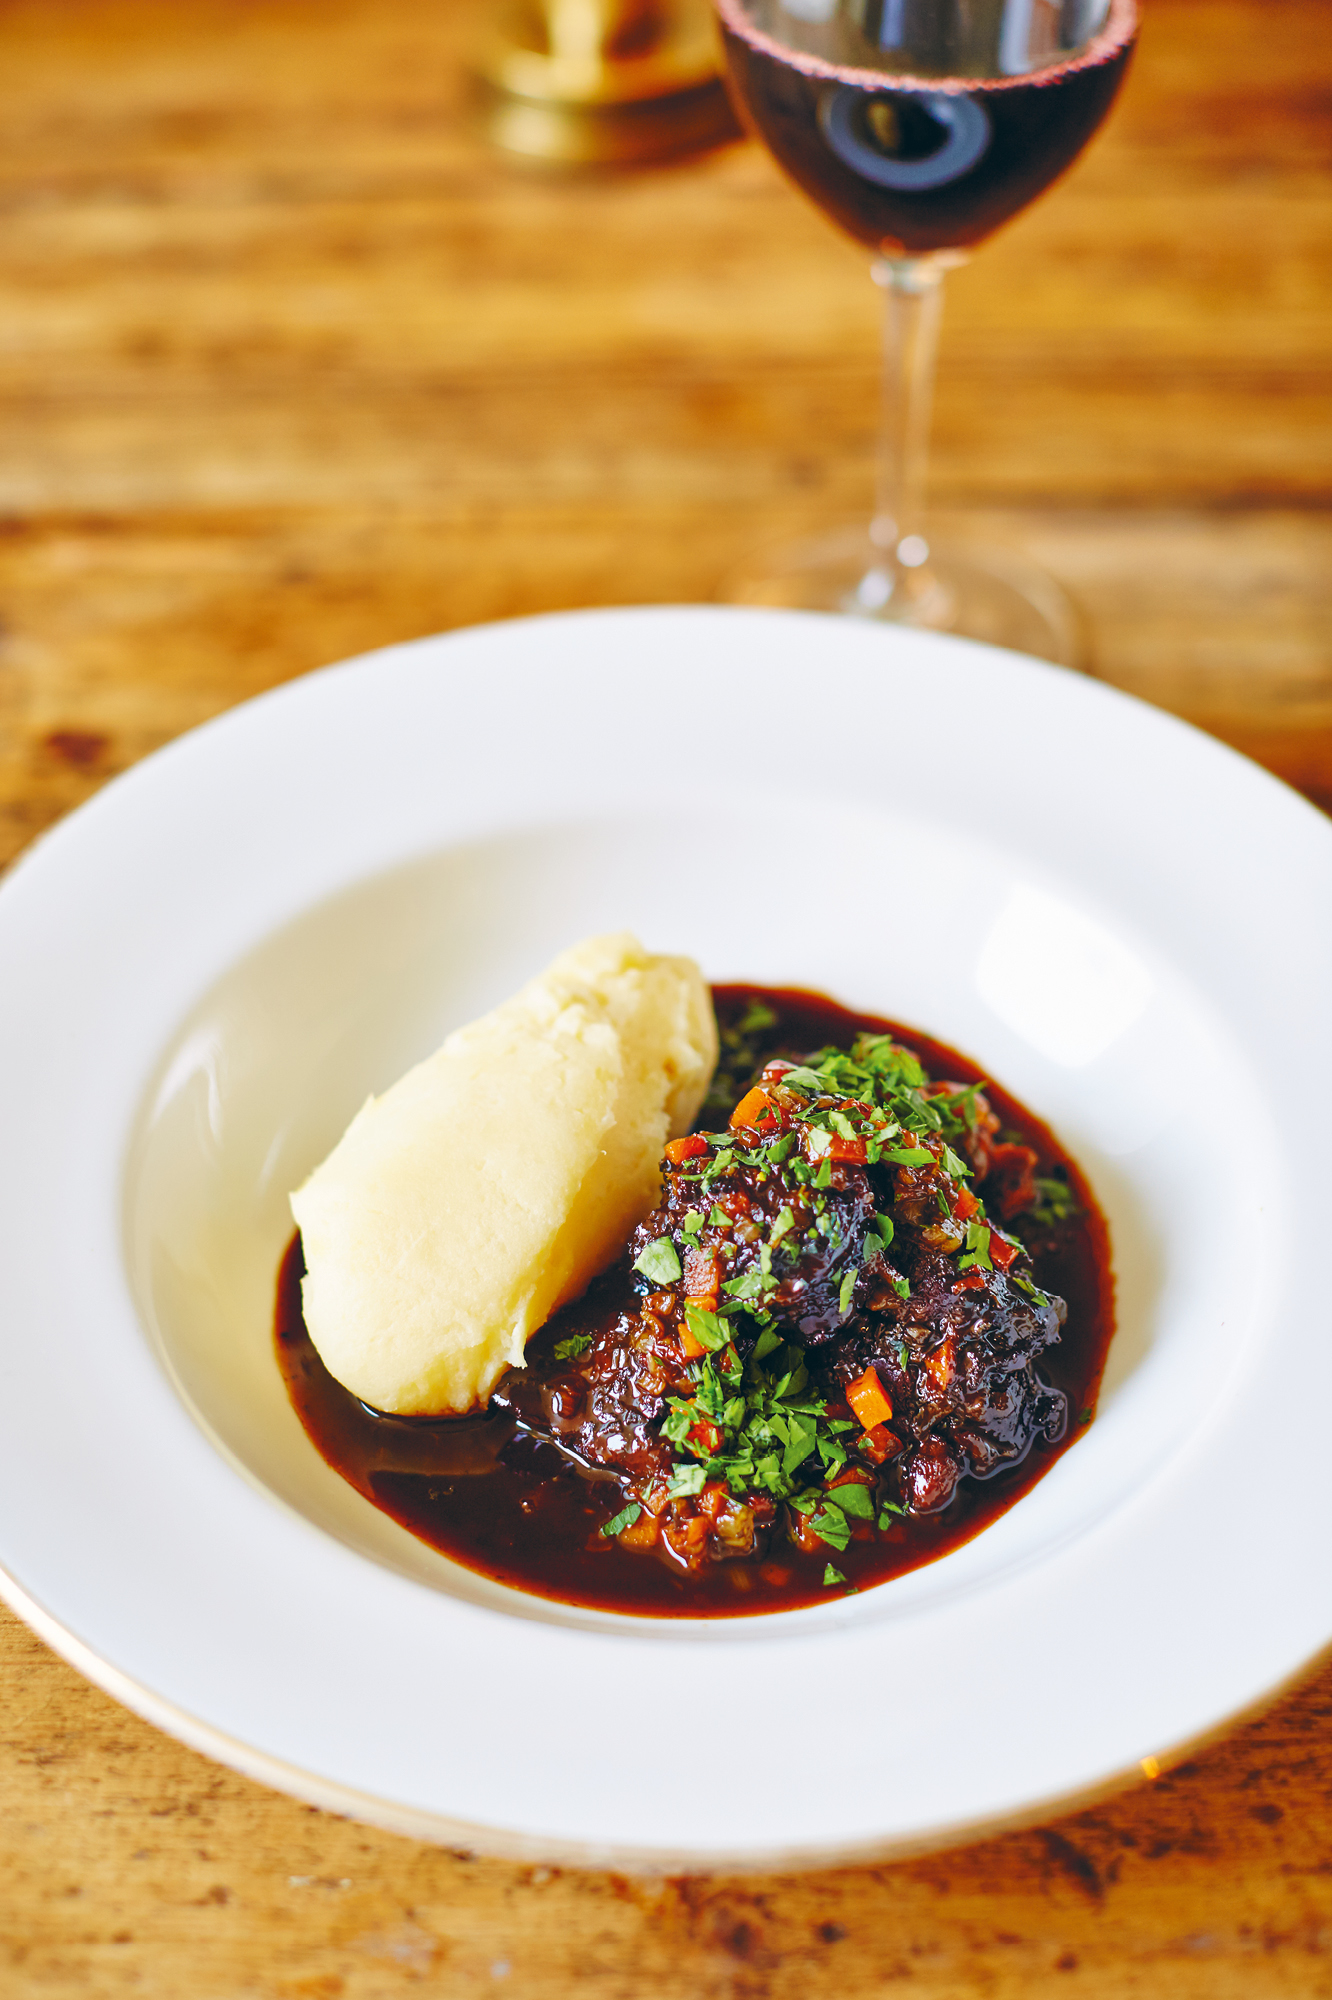 Braised ox cheek with horseradish mash from The Fortnum's Cook Book